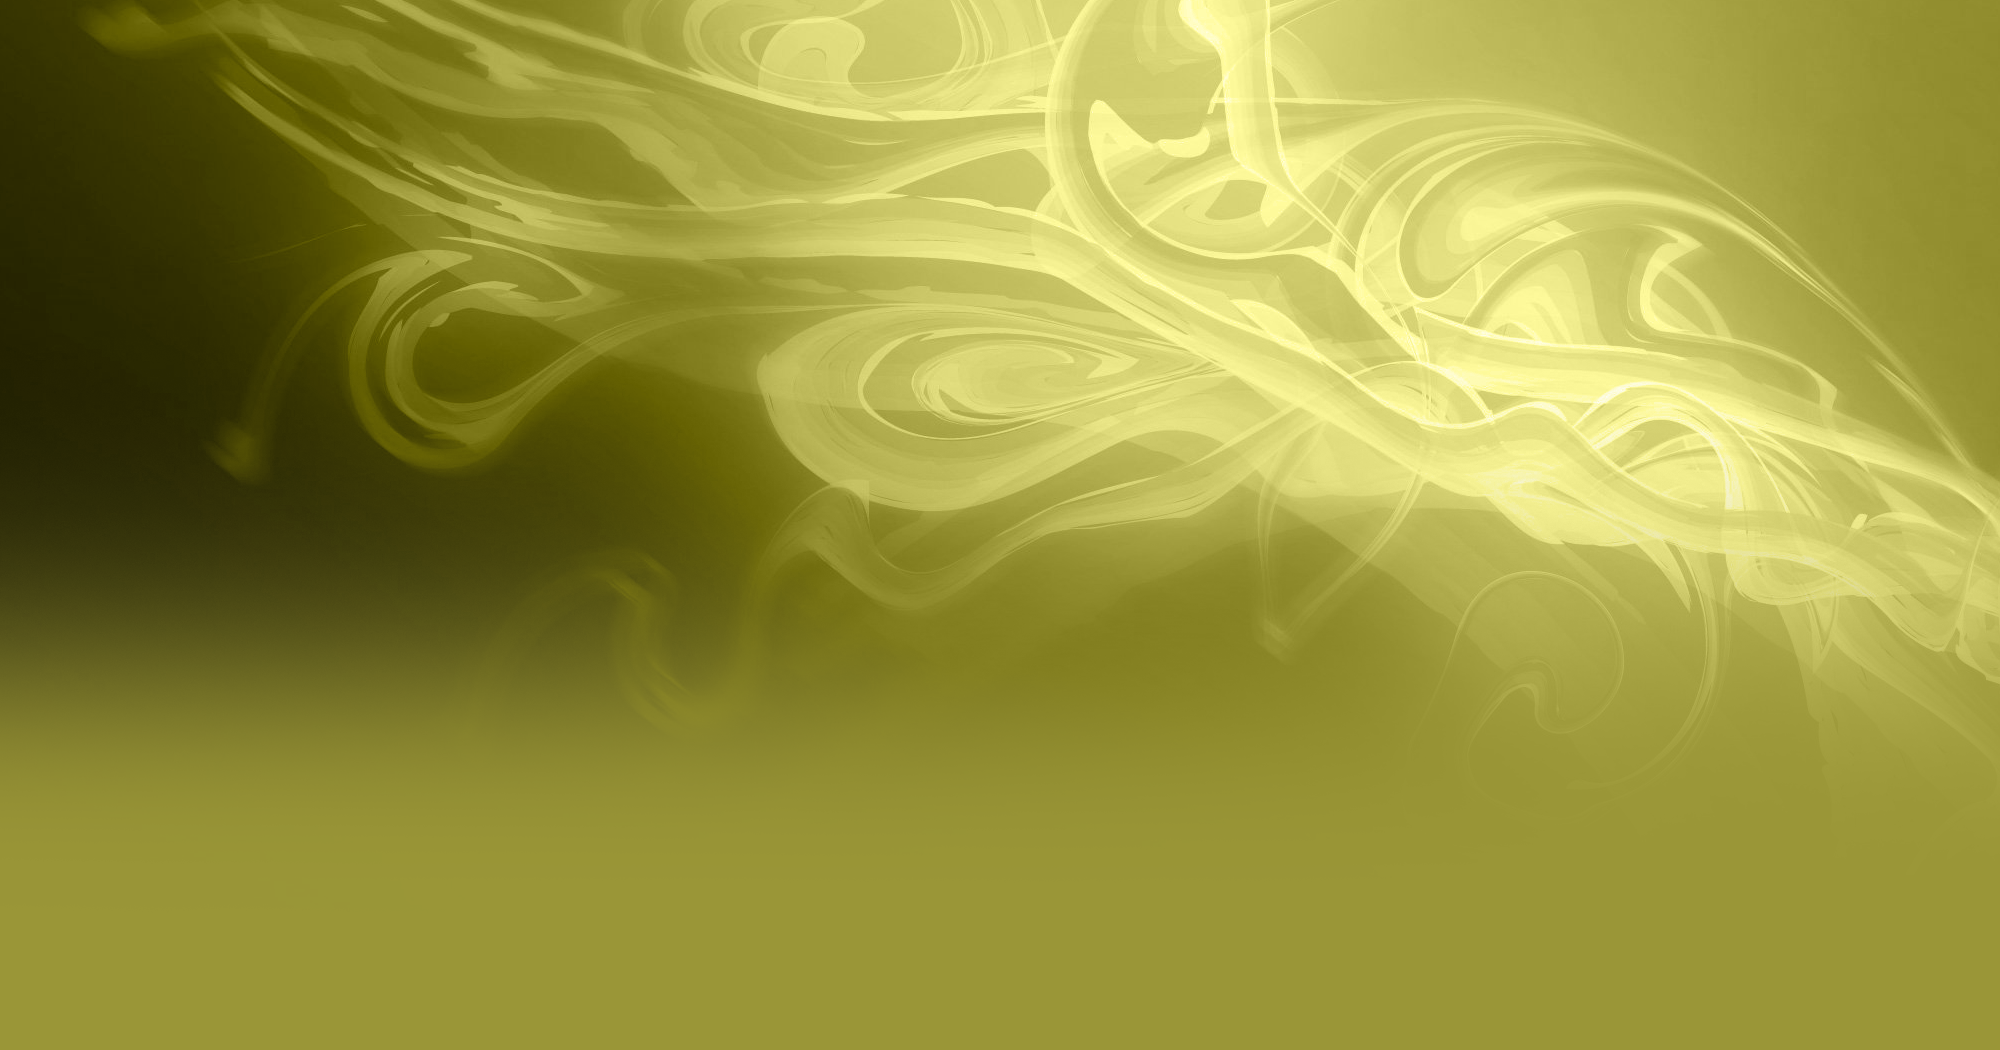 Background Png Images (102+ images in Collection) Page 1.